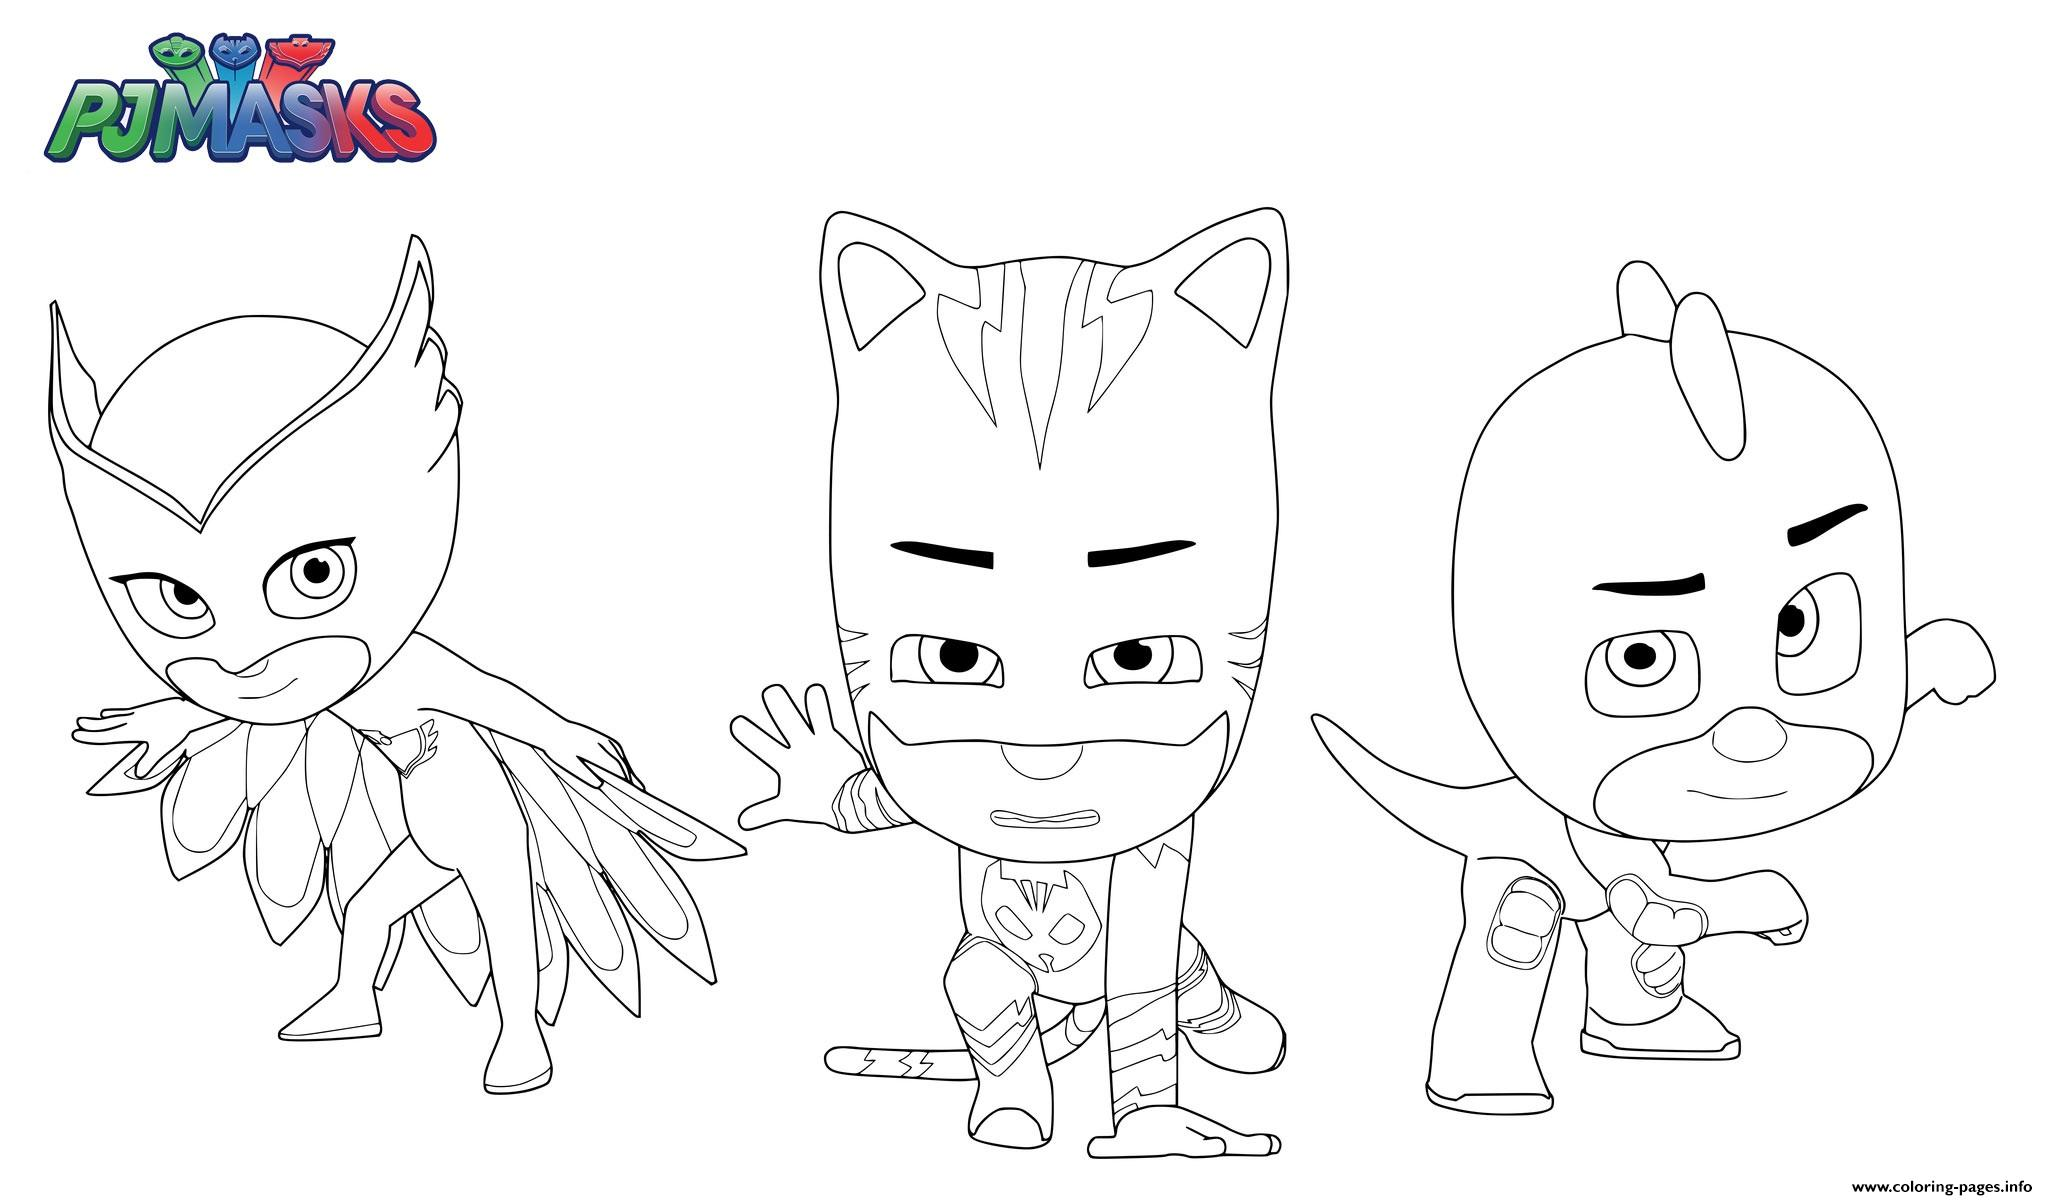 PJ Masks Superheroes Coloring Pages